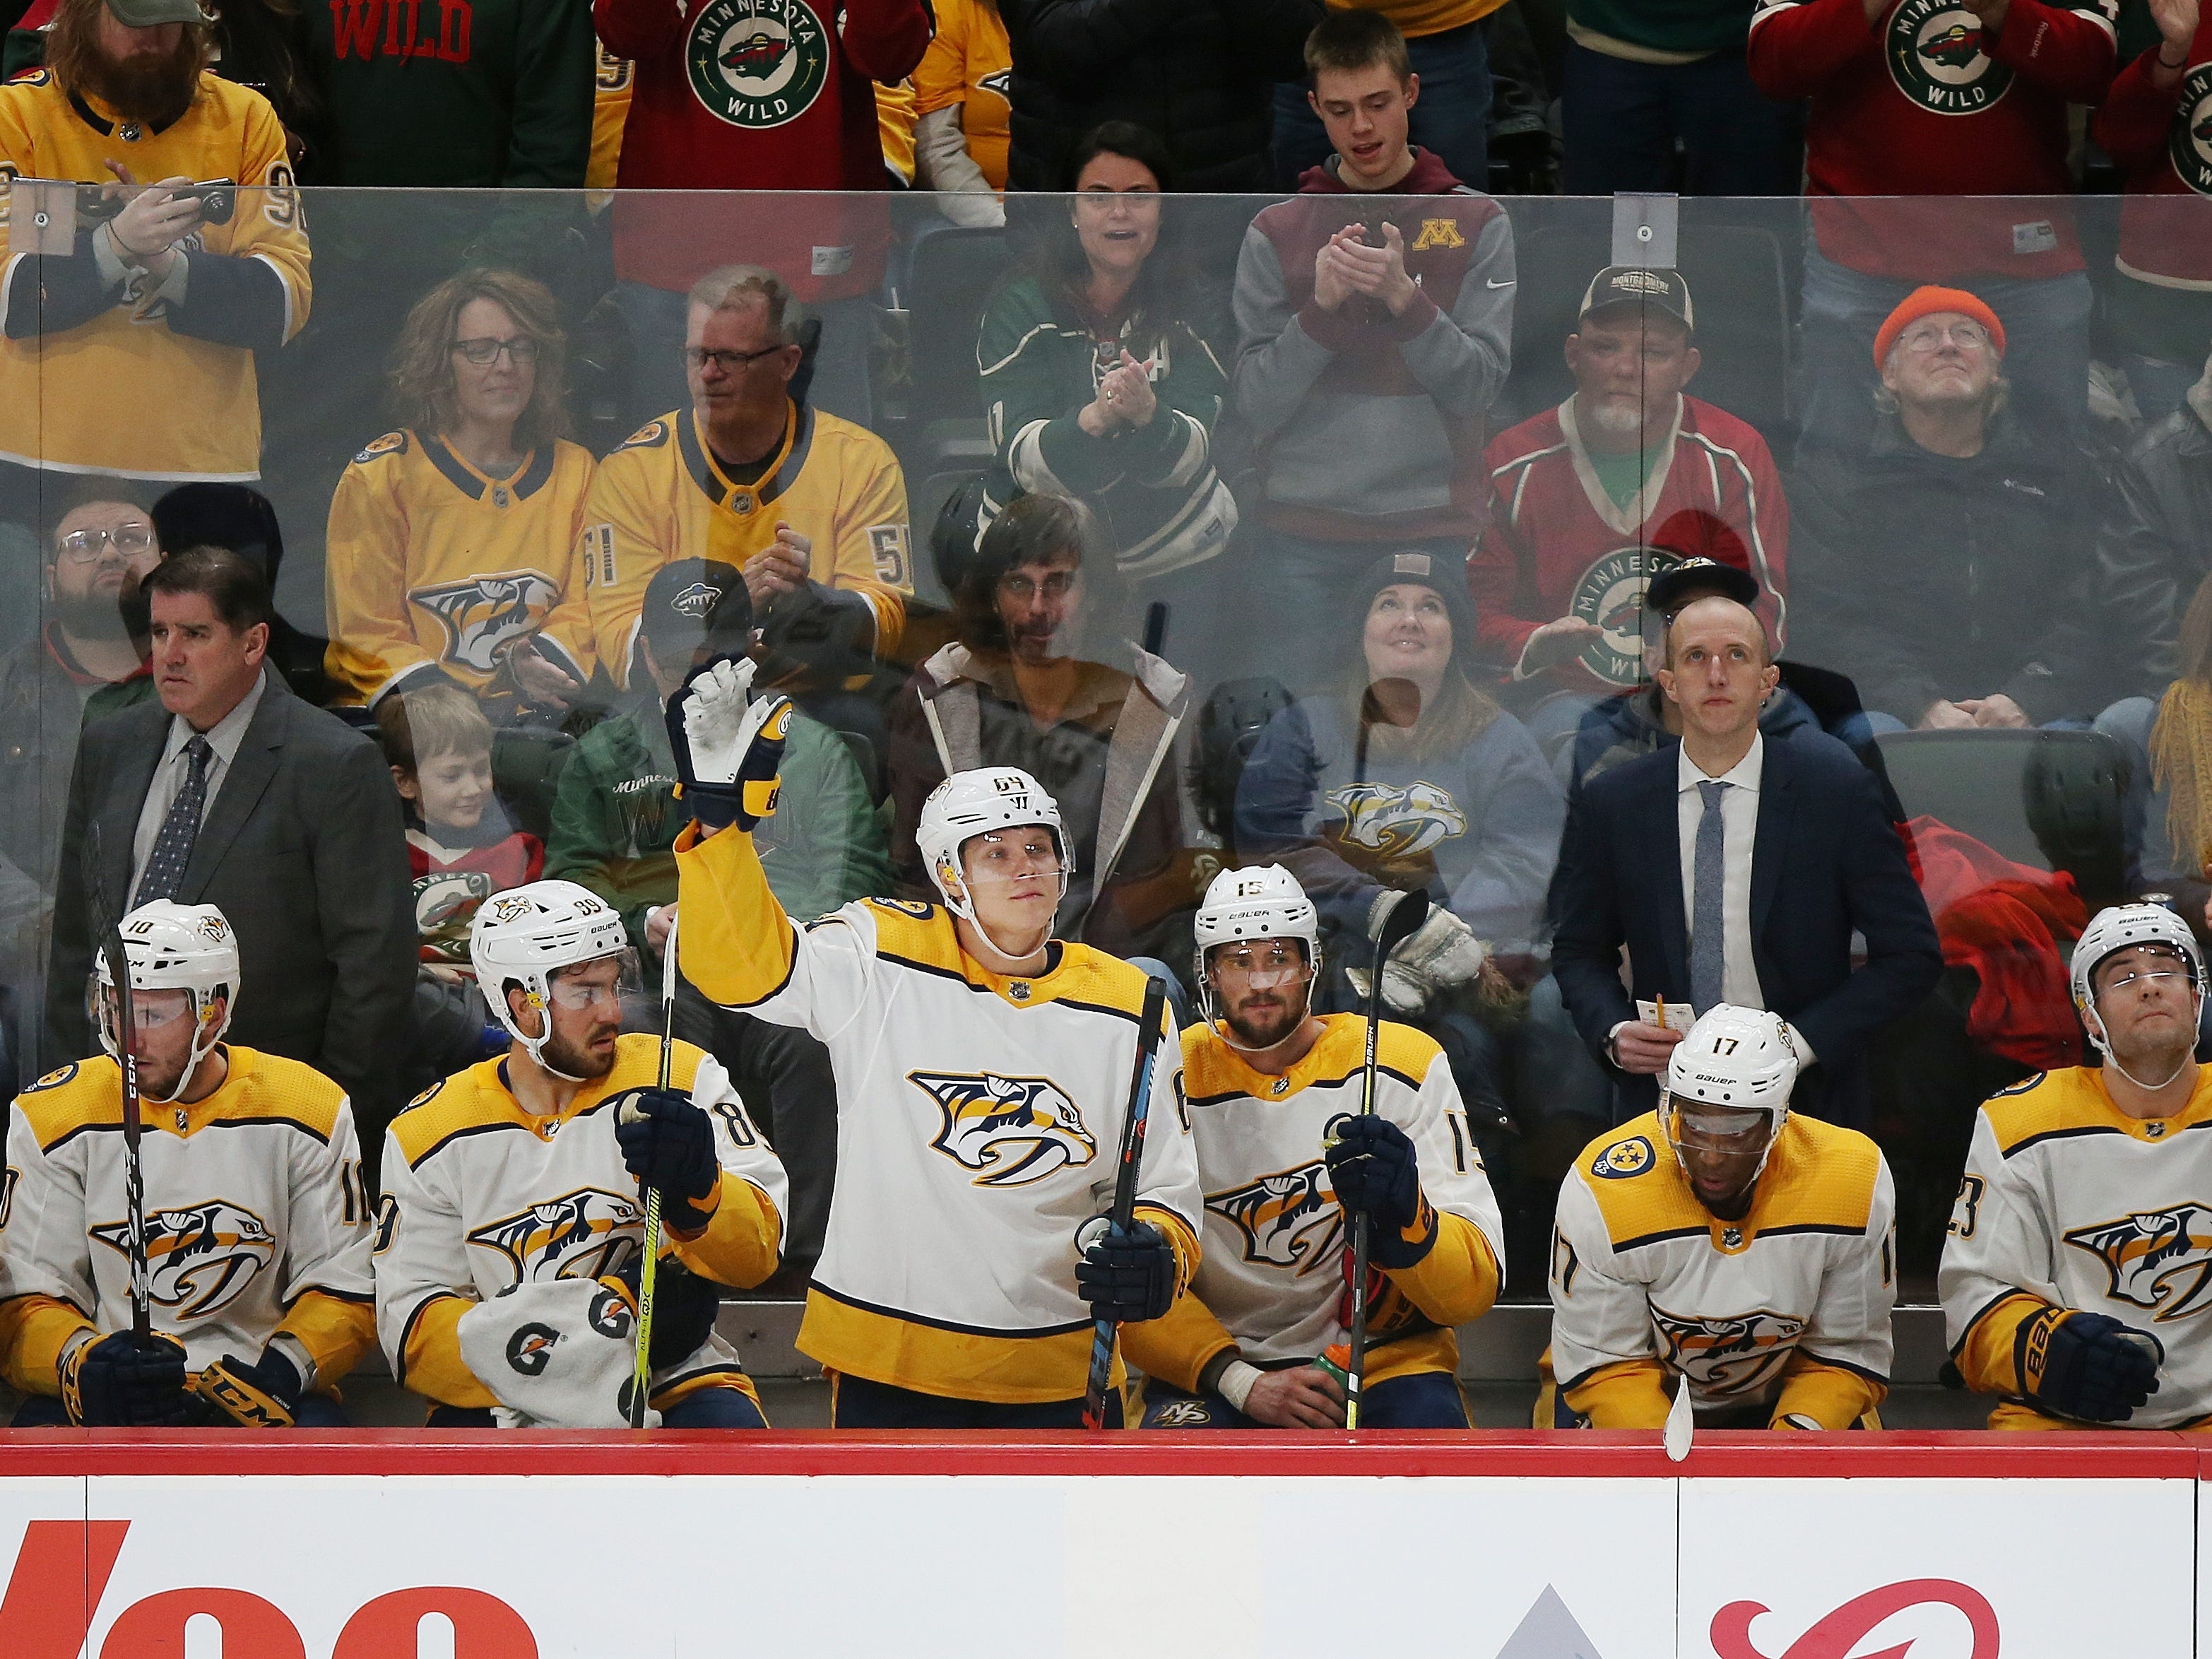 Nashville Predators' Mikael Granlund waves to fans after returning to the ice to play against his former team the Minnesota Wild on March 3, 2019.